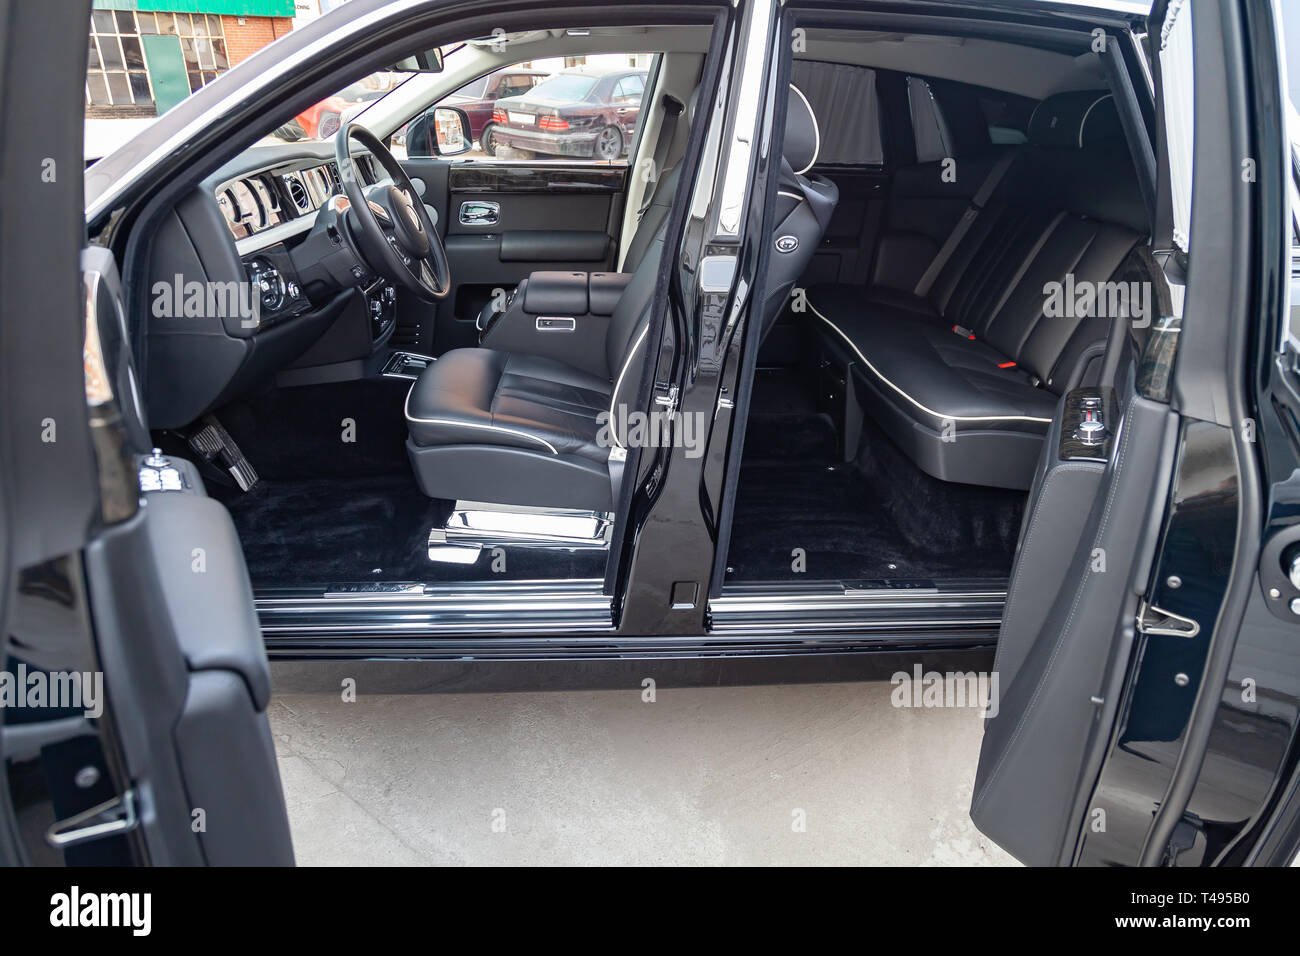 Novosibirsk Russia 04 11 2019 Interior View Of New A Very Expensive Rolls Royce Phantom Car A Long Black Limousine With Opened Doors Dashboard Stock Photo Alamy